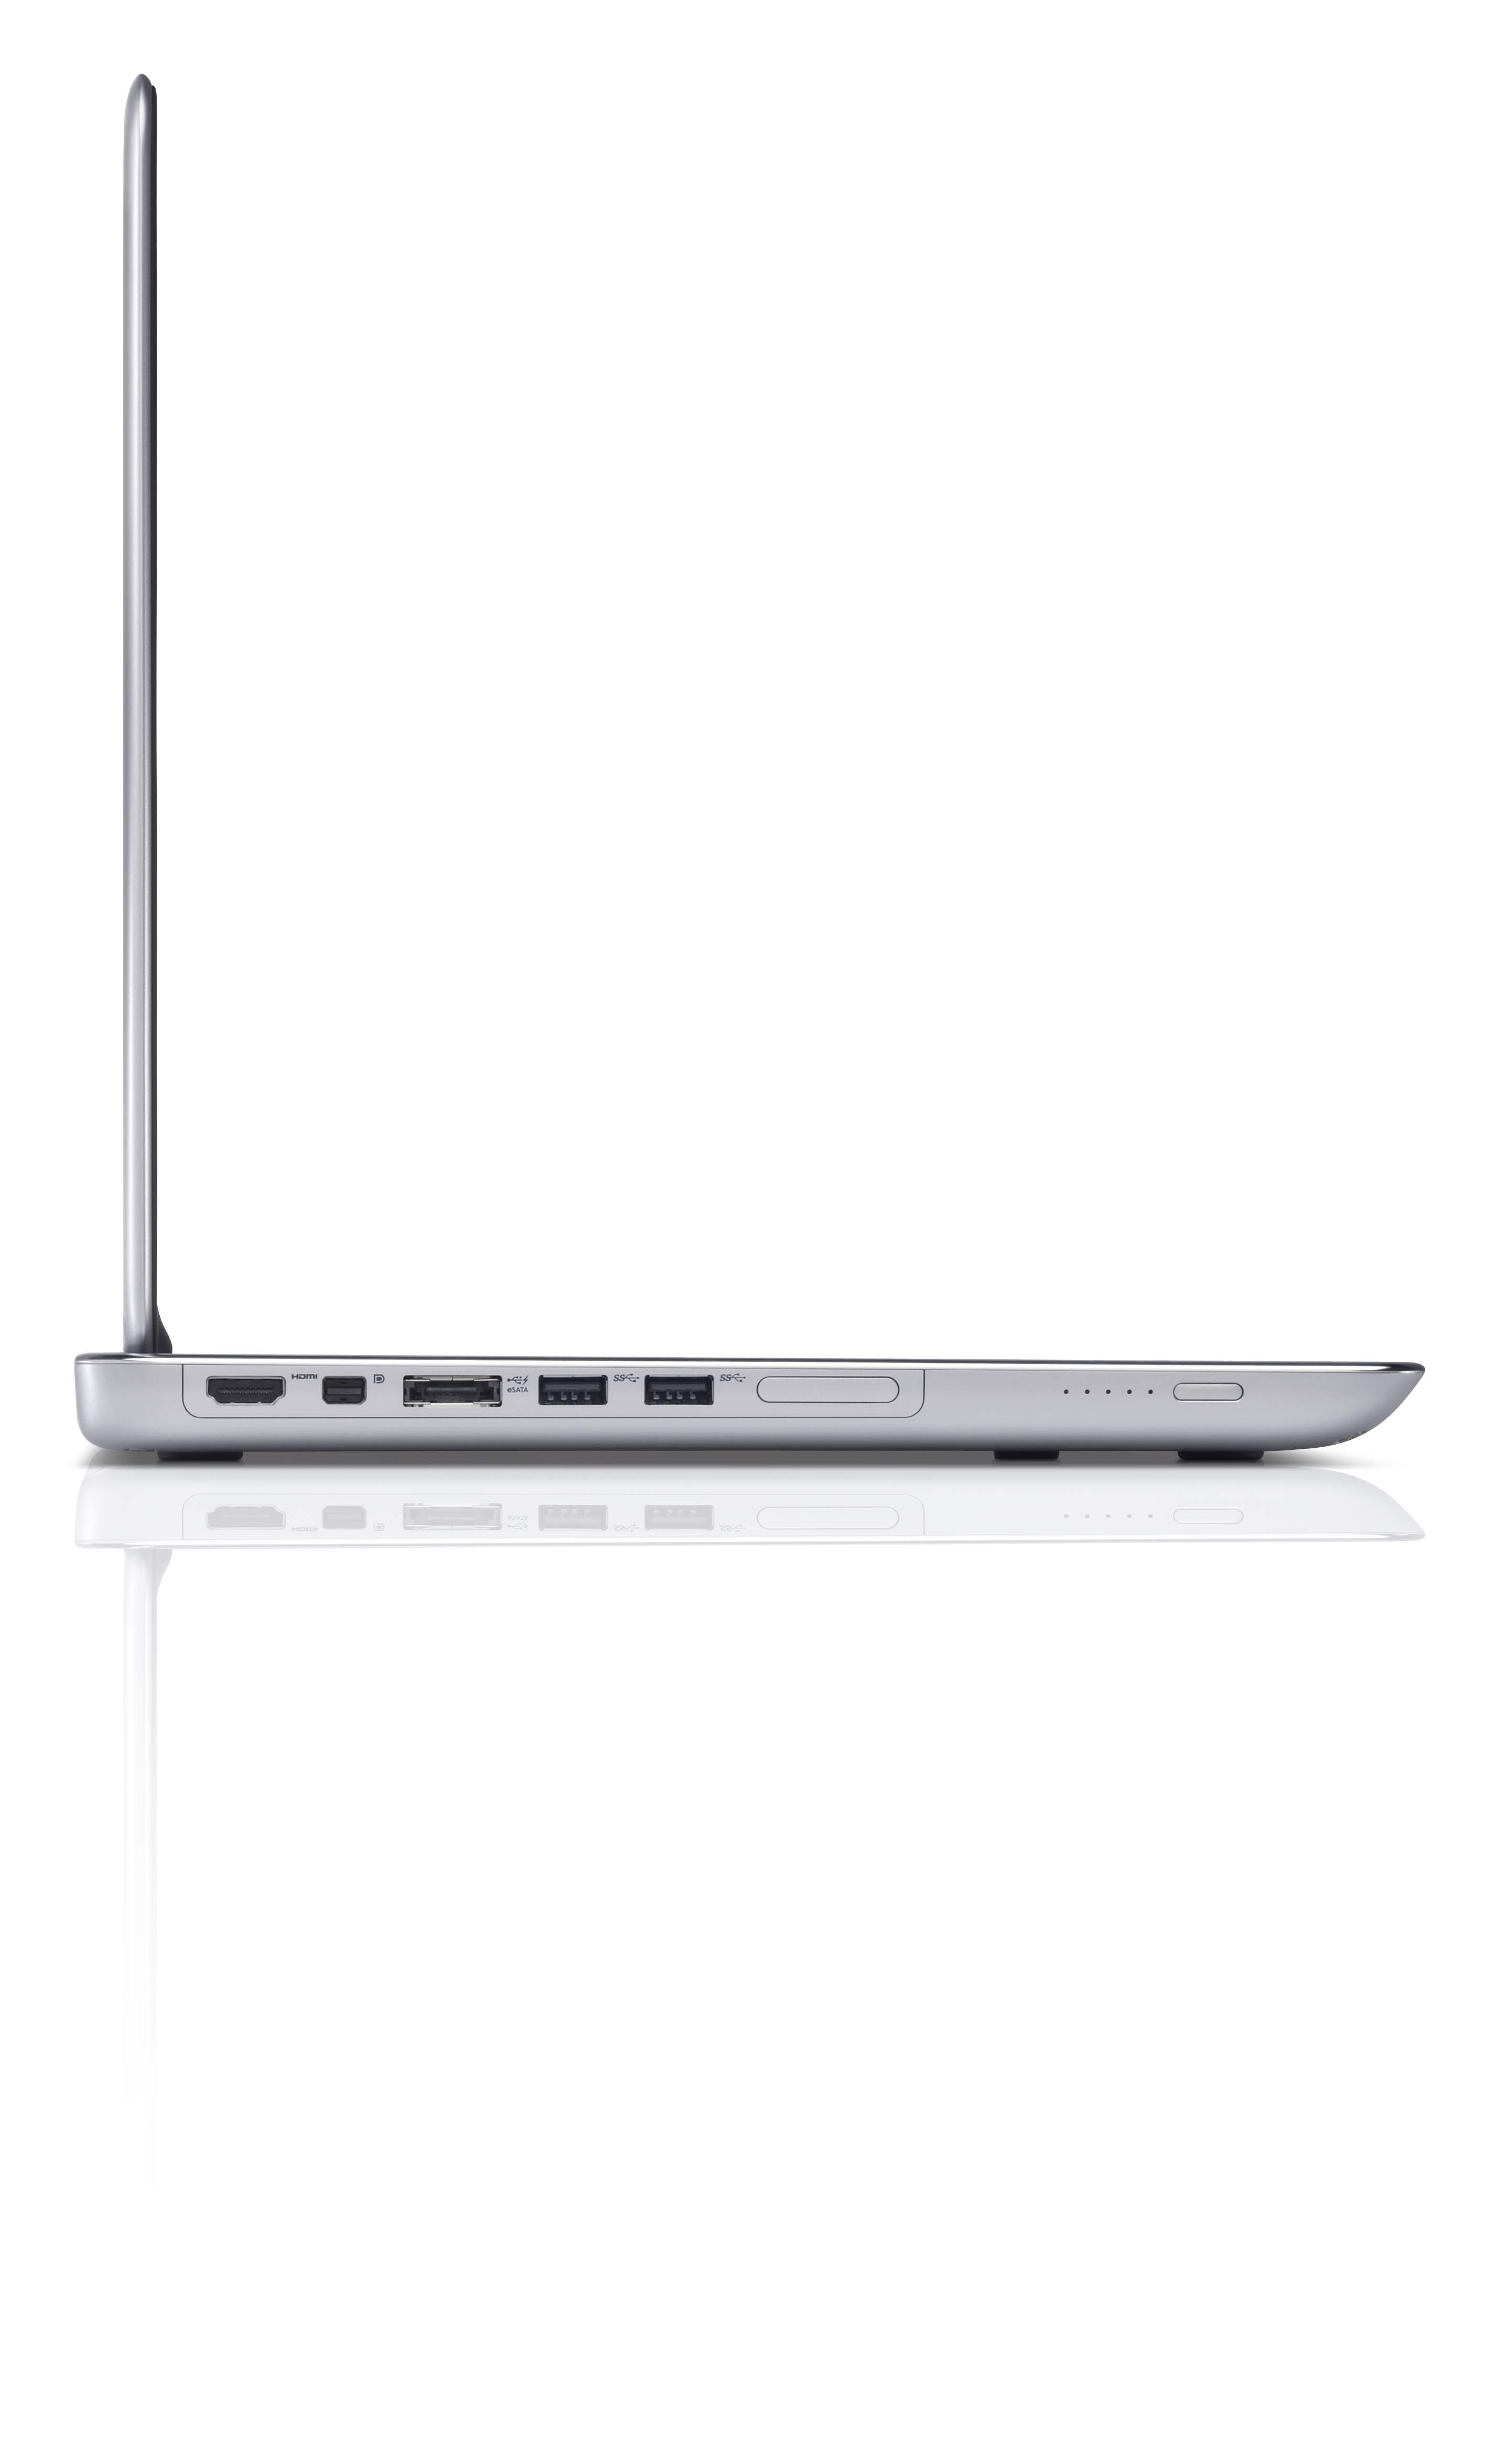 At .97 inches, the XPS 15Z is thicker than its predecessor the 13-inch Adamo, which measured .65 inches at its thinnest point.